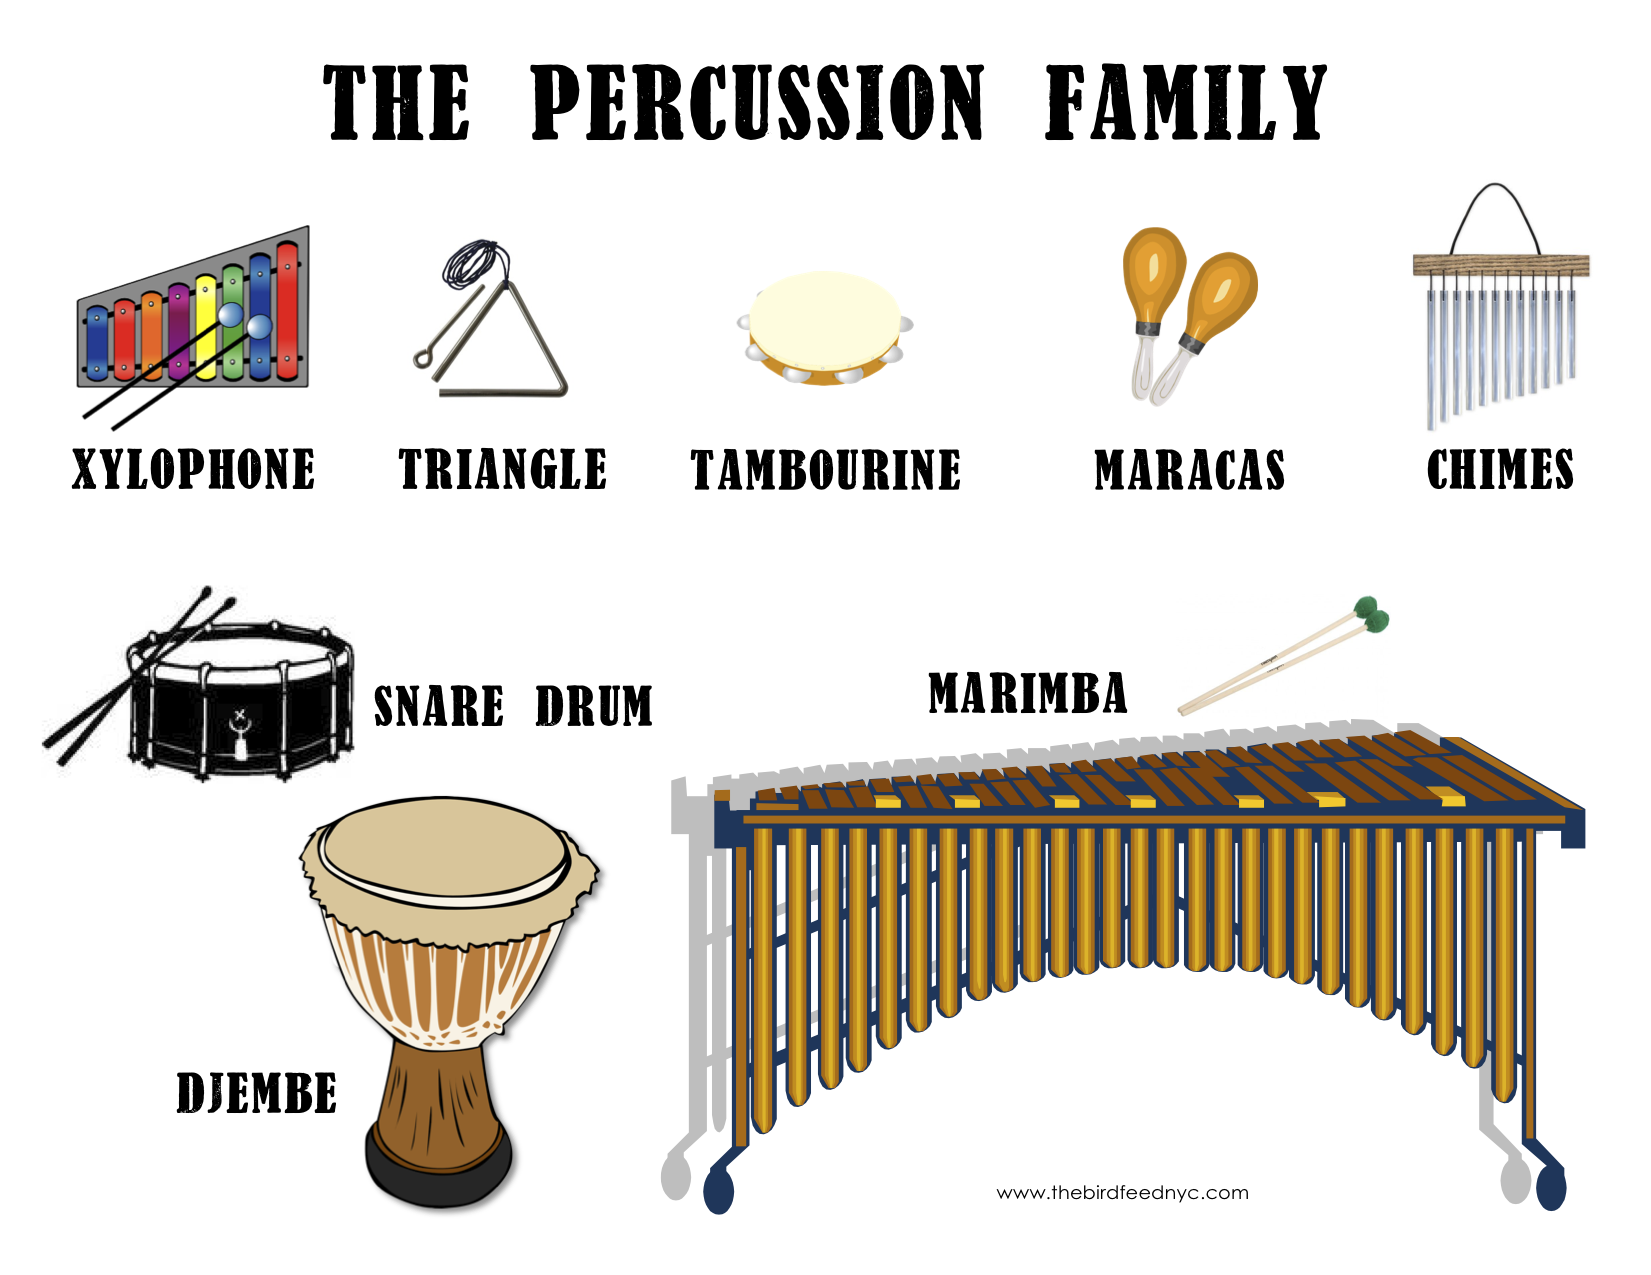 Worksheet Percussion Instruments Crossword worksheet percussion instruments crossword mikyu free musicals the ojays and on pinterest family we make sounds our